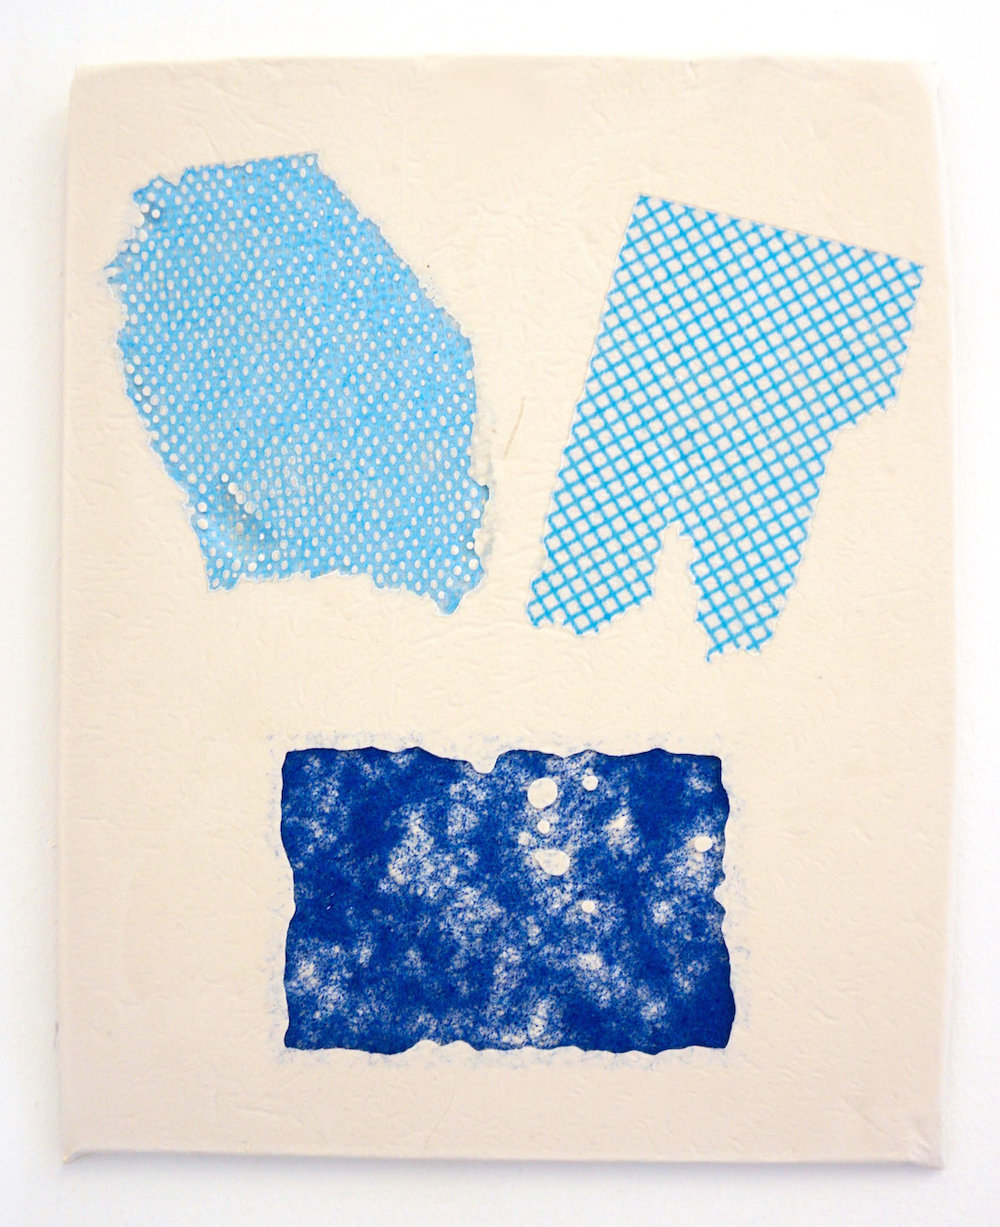 Domestic Bliss Fragment (blue) | Composite, Mixed Media | 35 x 28 cm